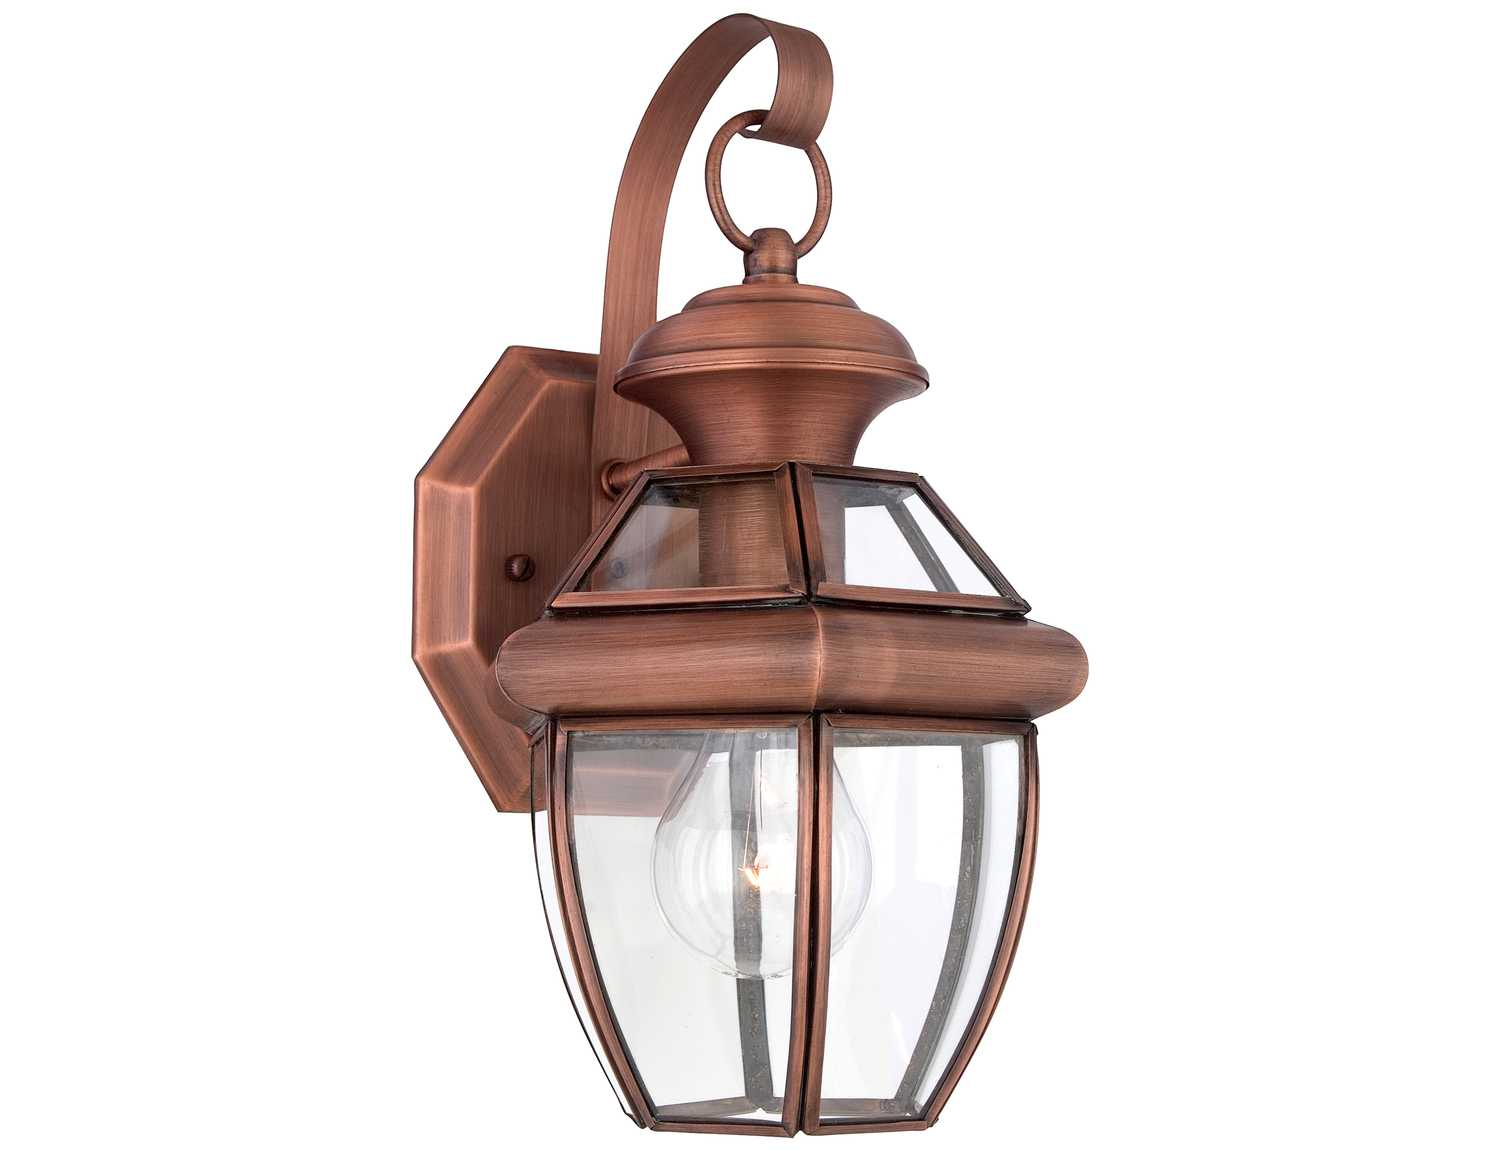 quoizel newbury patinaed solid copper outdoor wall light ny8315acfl